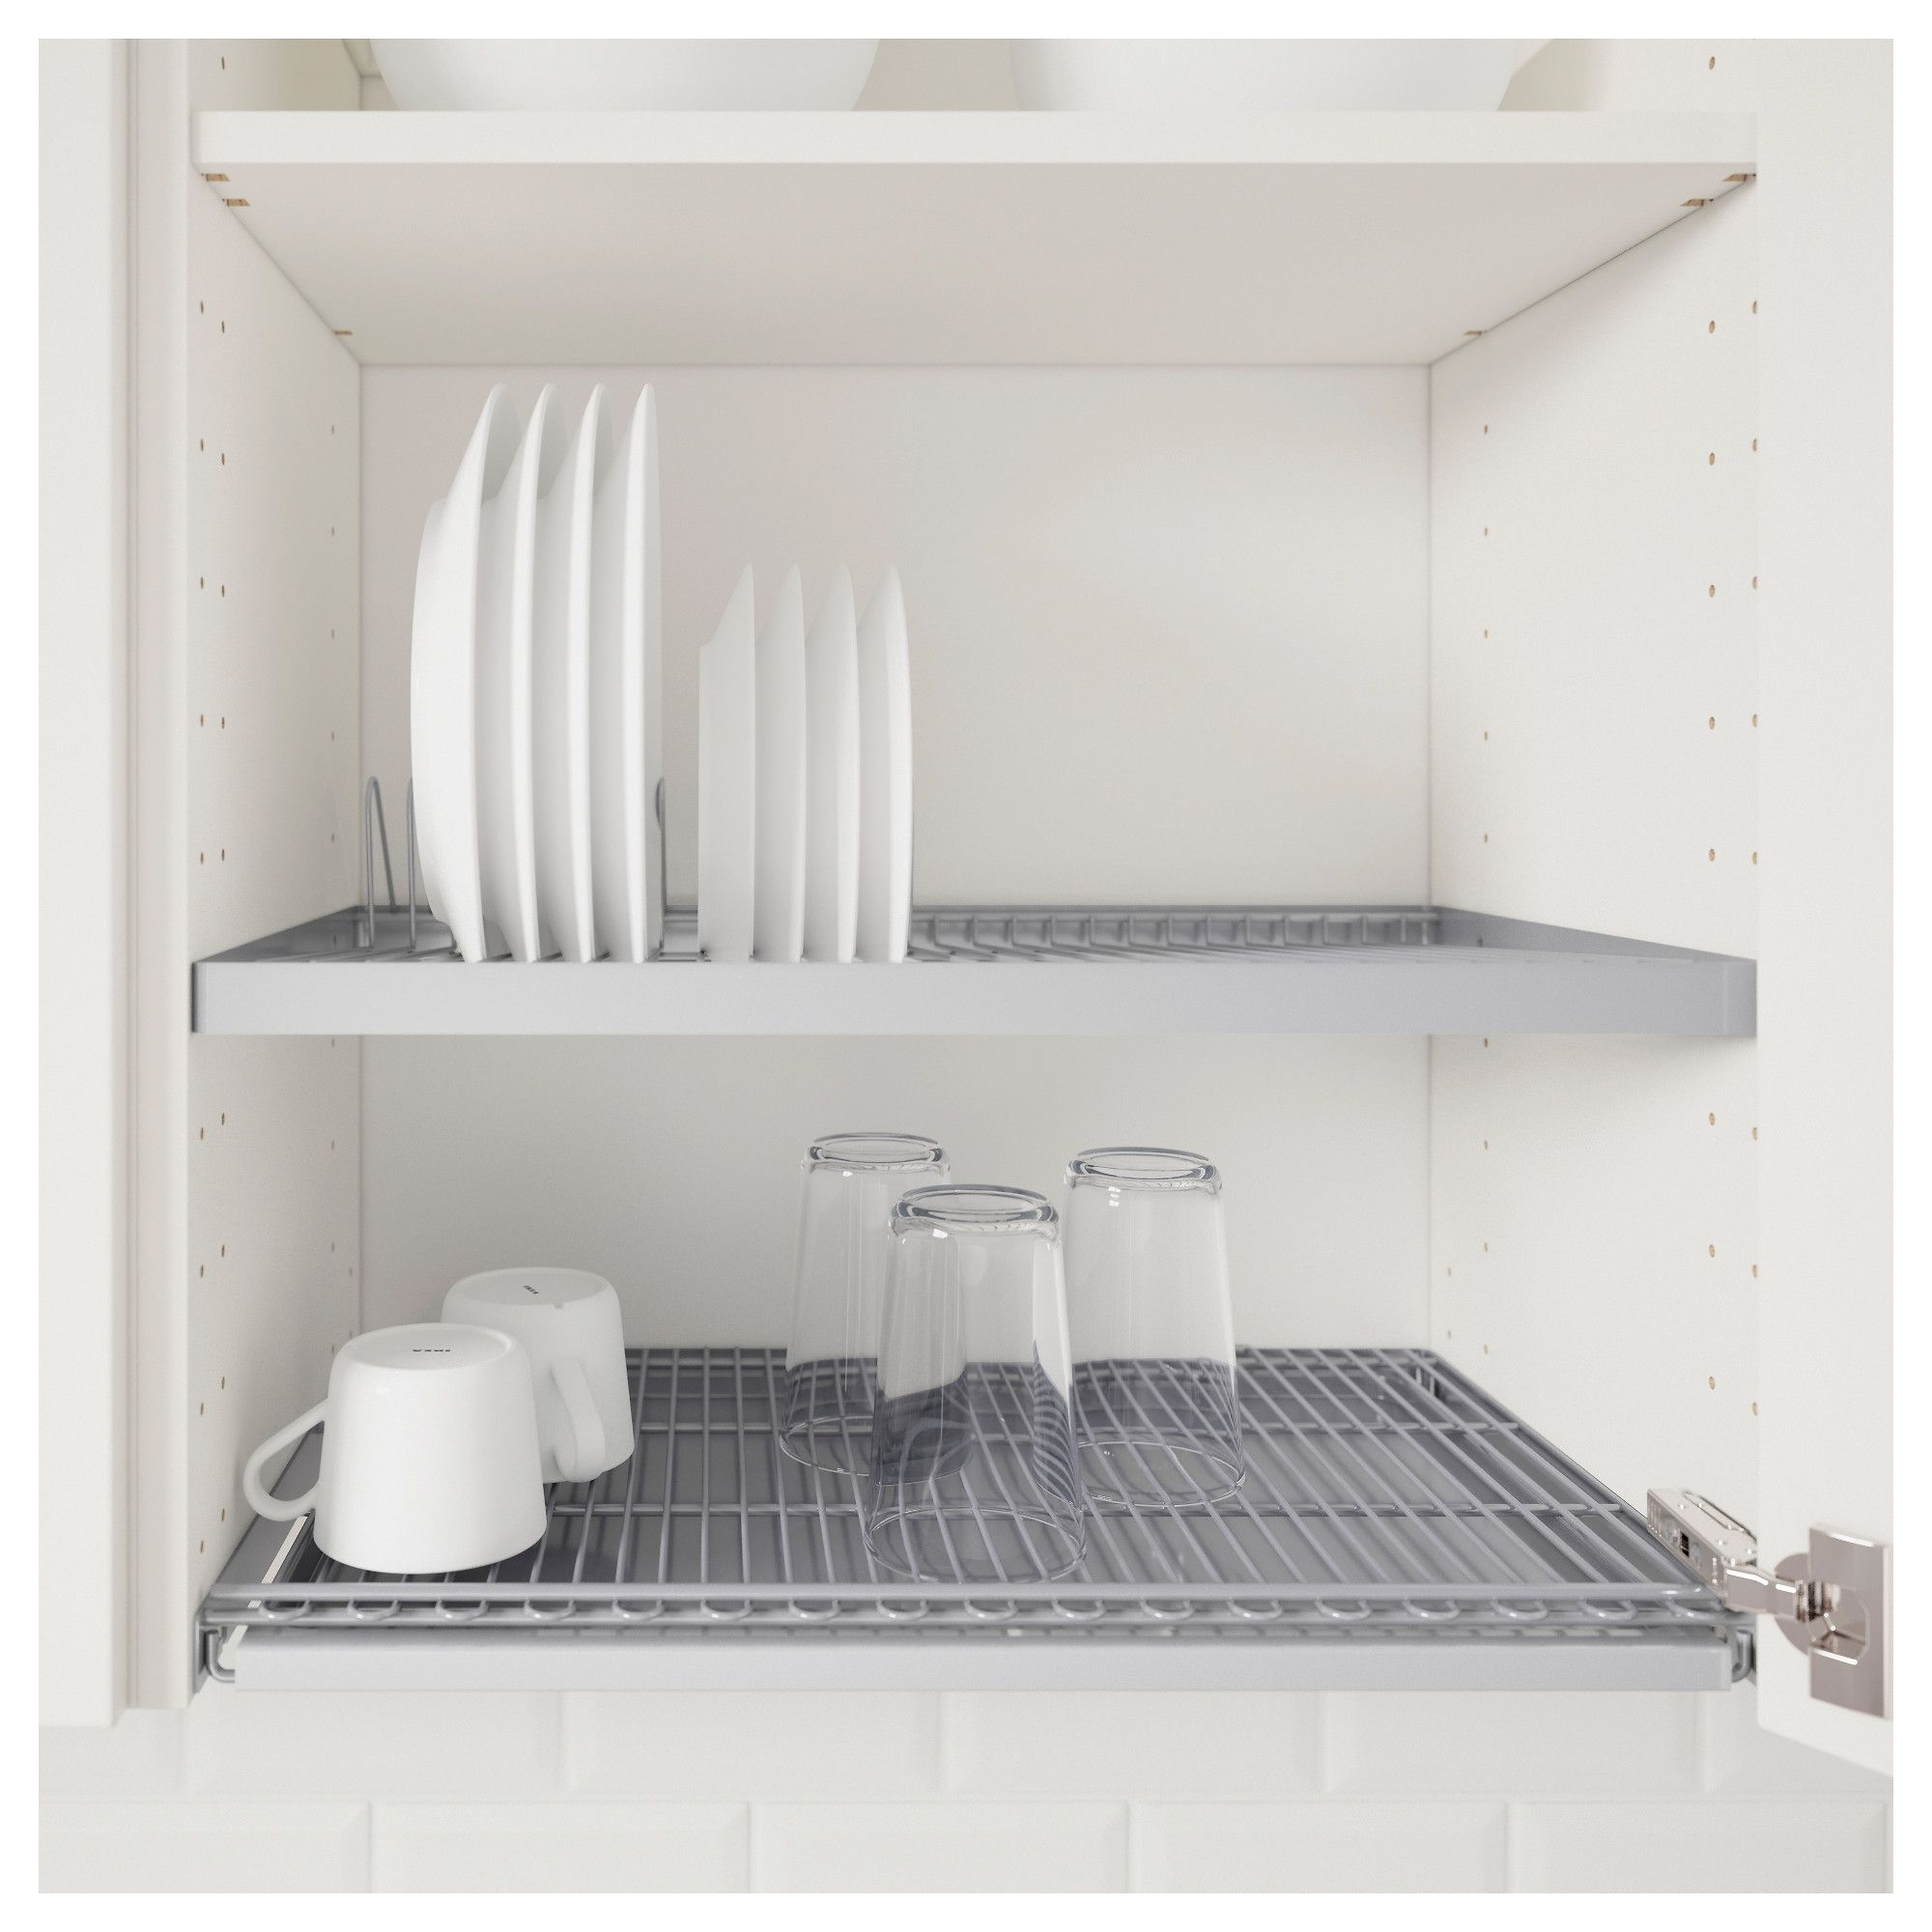 Design Hängeschrank Küche Utrusta Dish Drainer For Wall Cabinet Ikea In 2019 | Tiny